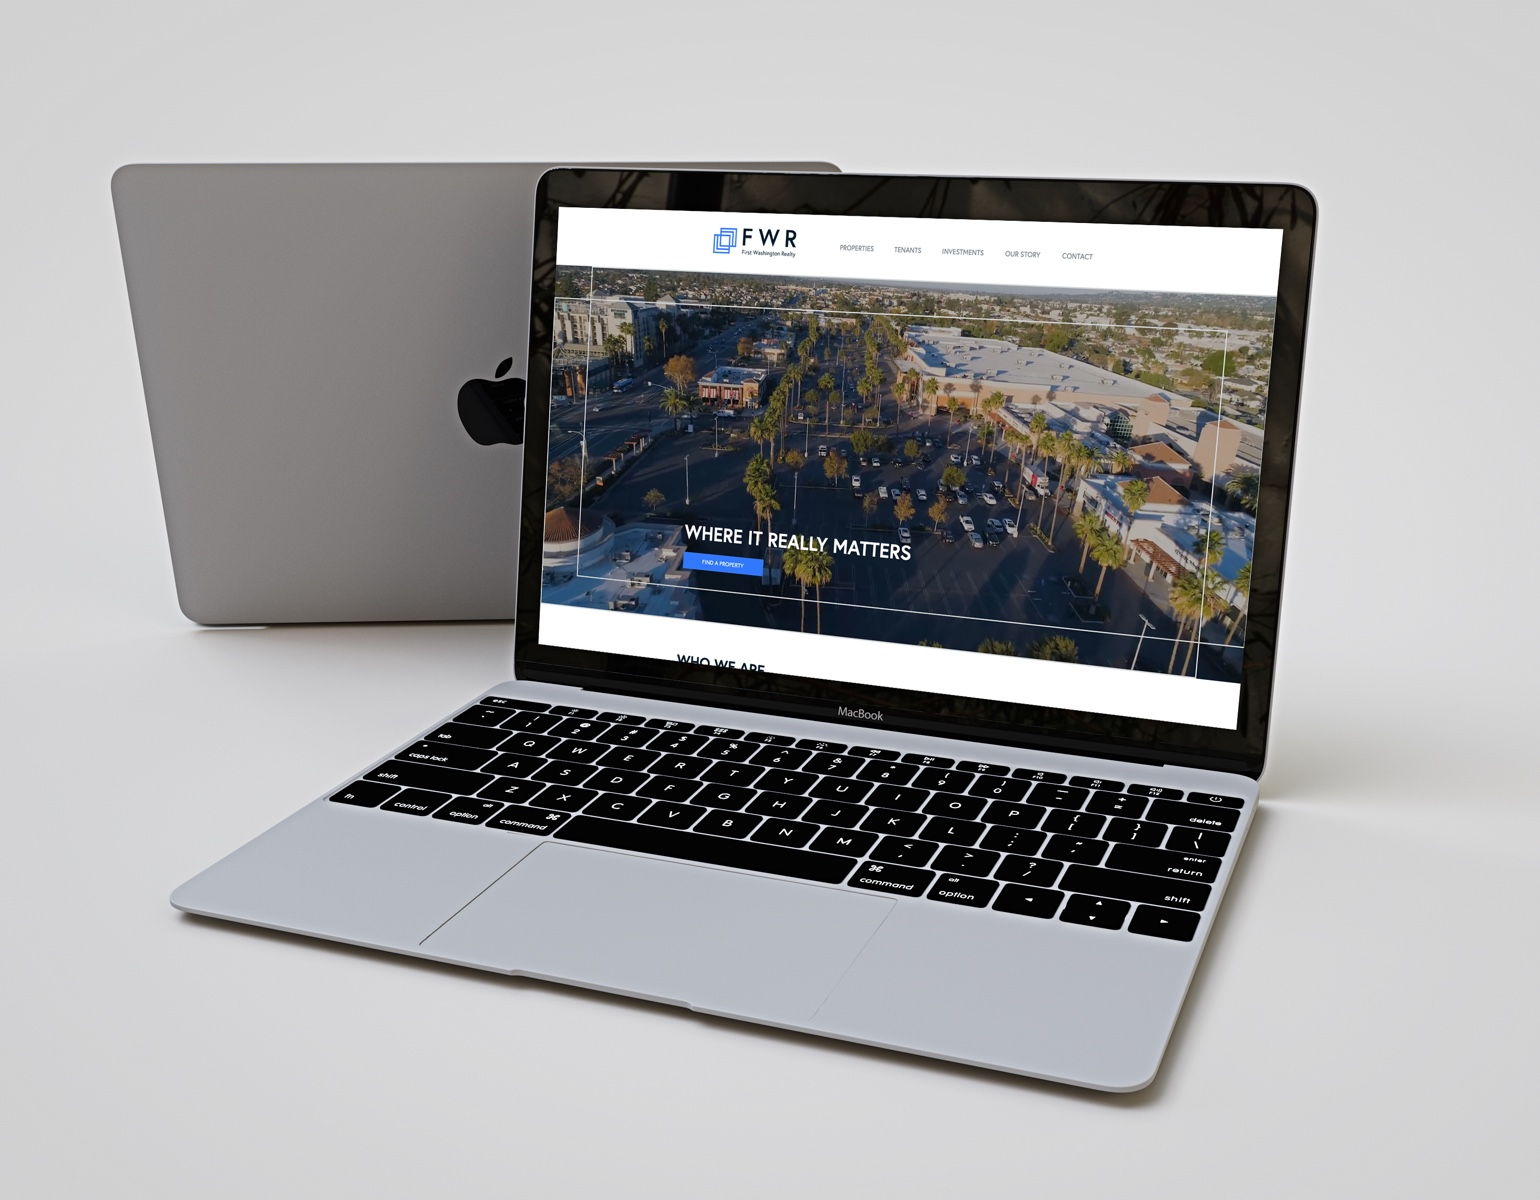 REQ First Washington Realty Website Laptop